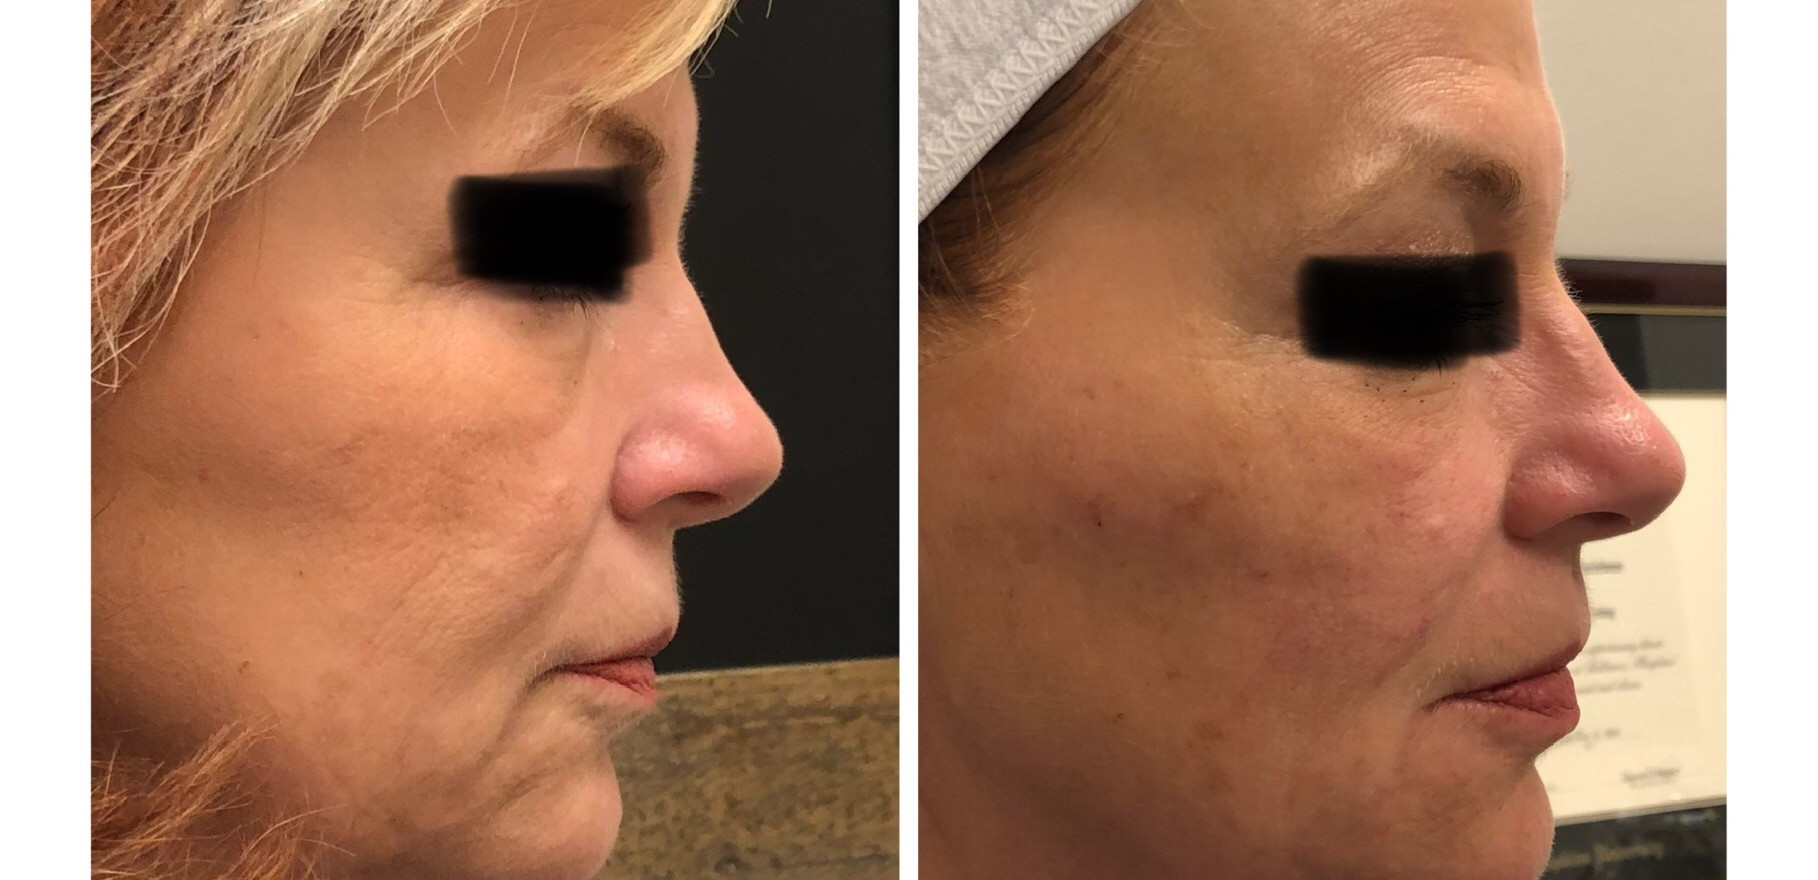 Lift is everything as we age......Dermal Filler placed in the cheeks allowing a lift for a  cleaner jaw line as well as less wrinkles and sag in the marionette area next to the mouth.